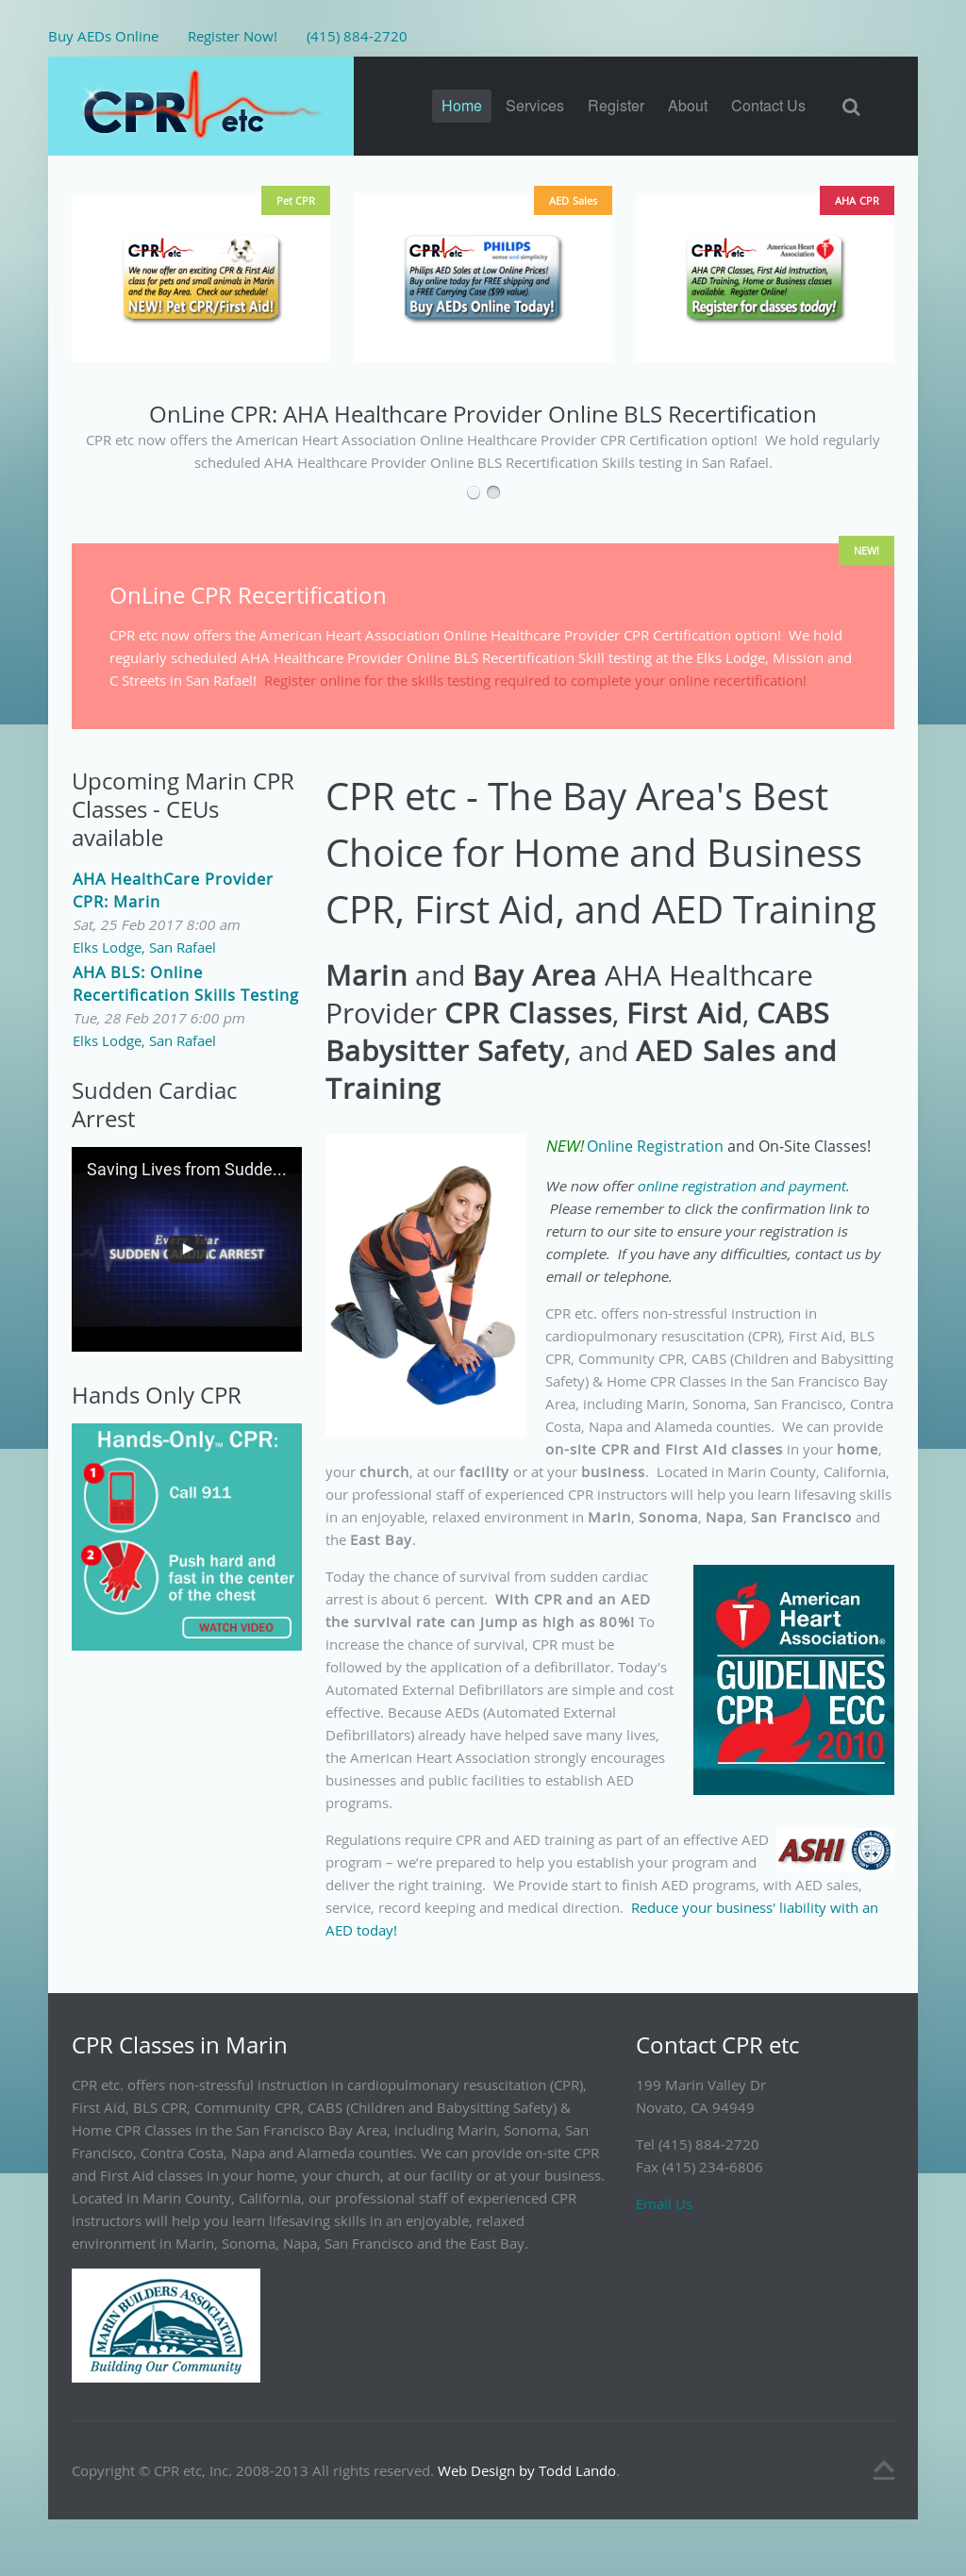 the history of cpr Learn the history of cpr as well as its success through time we cover cpr history, the changes over time, what the future looks like.